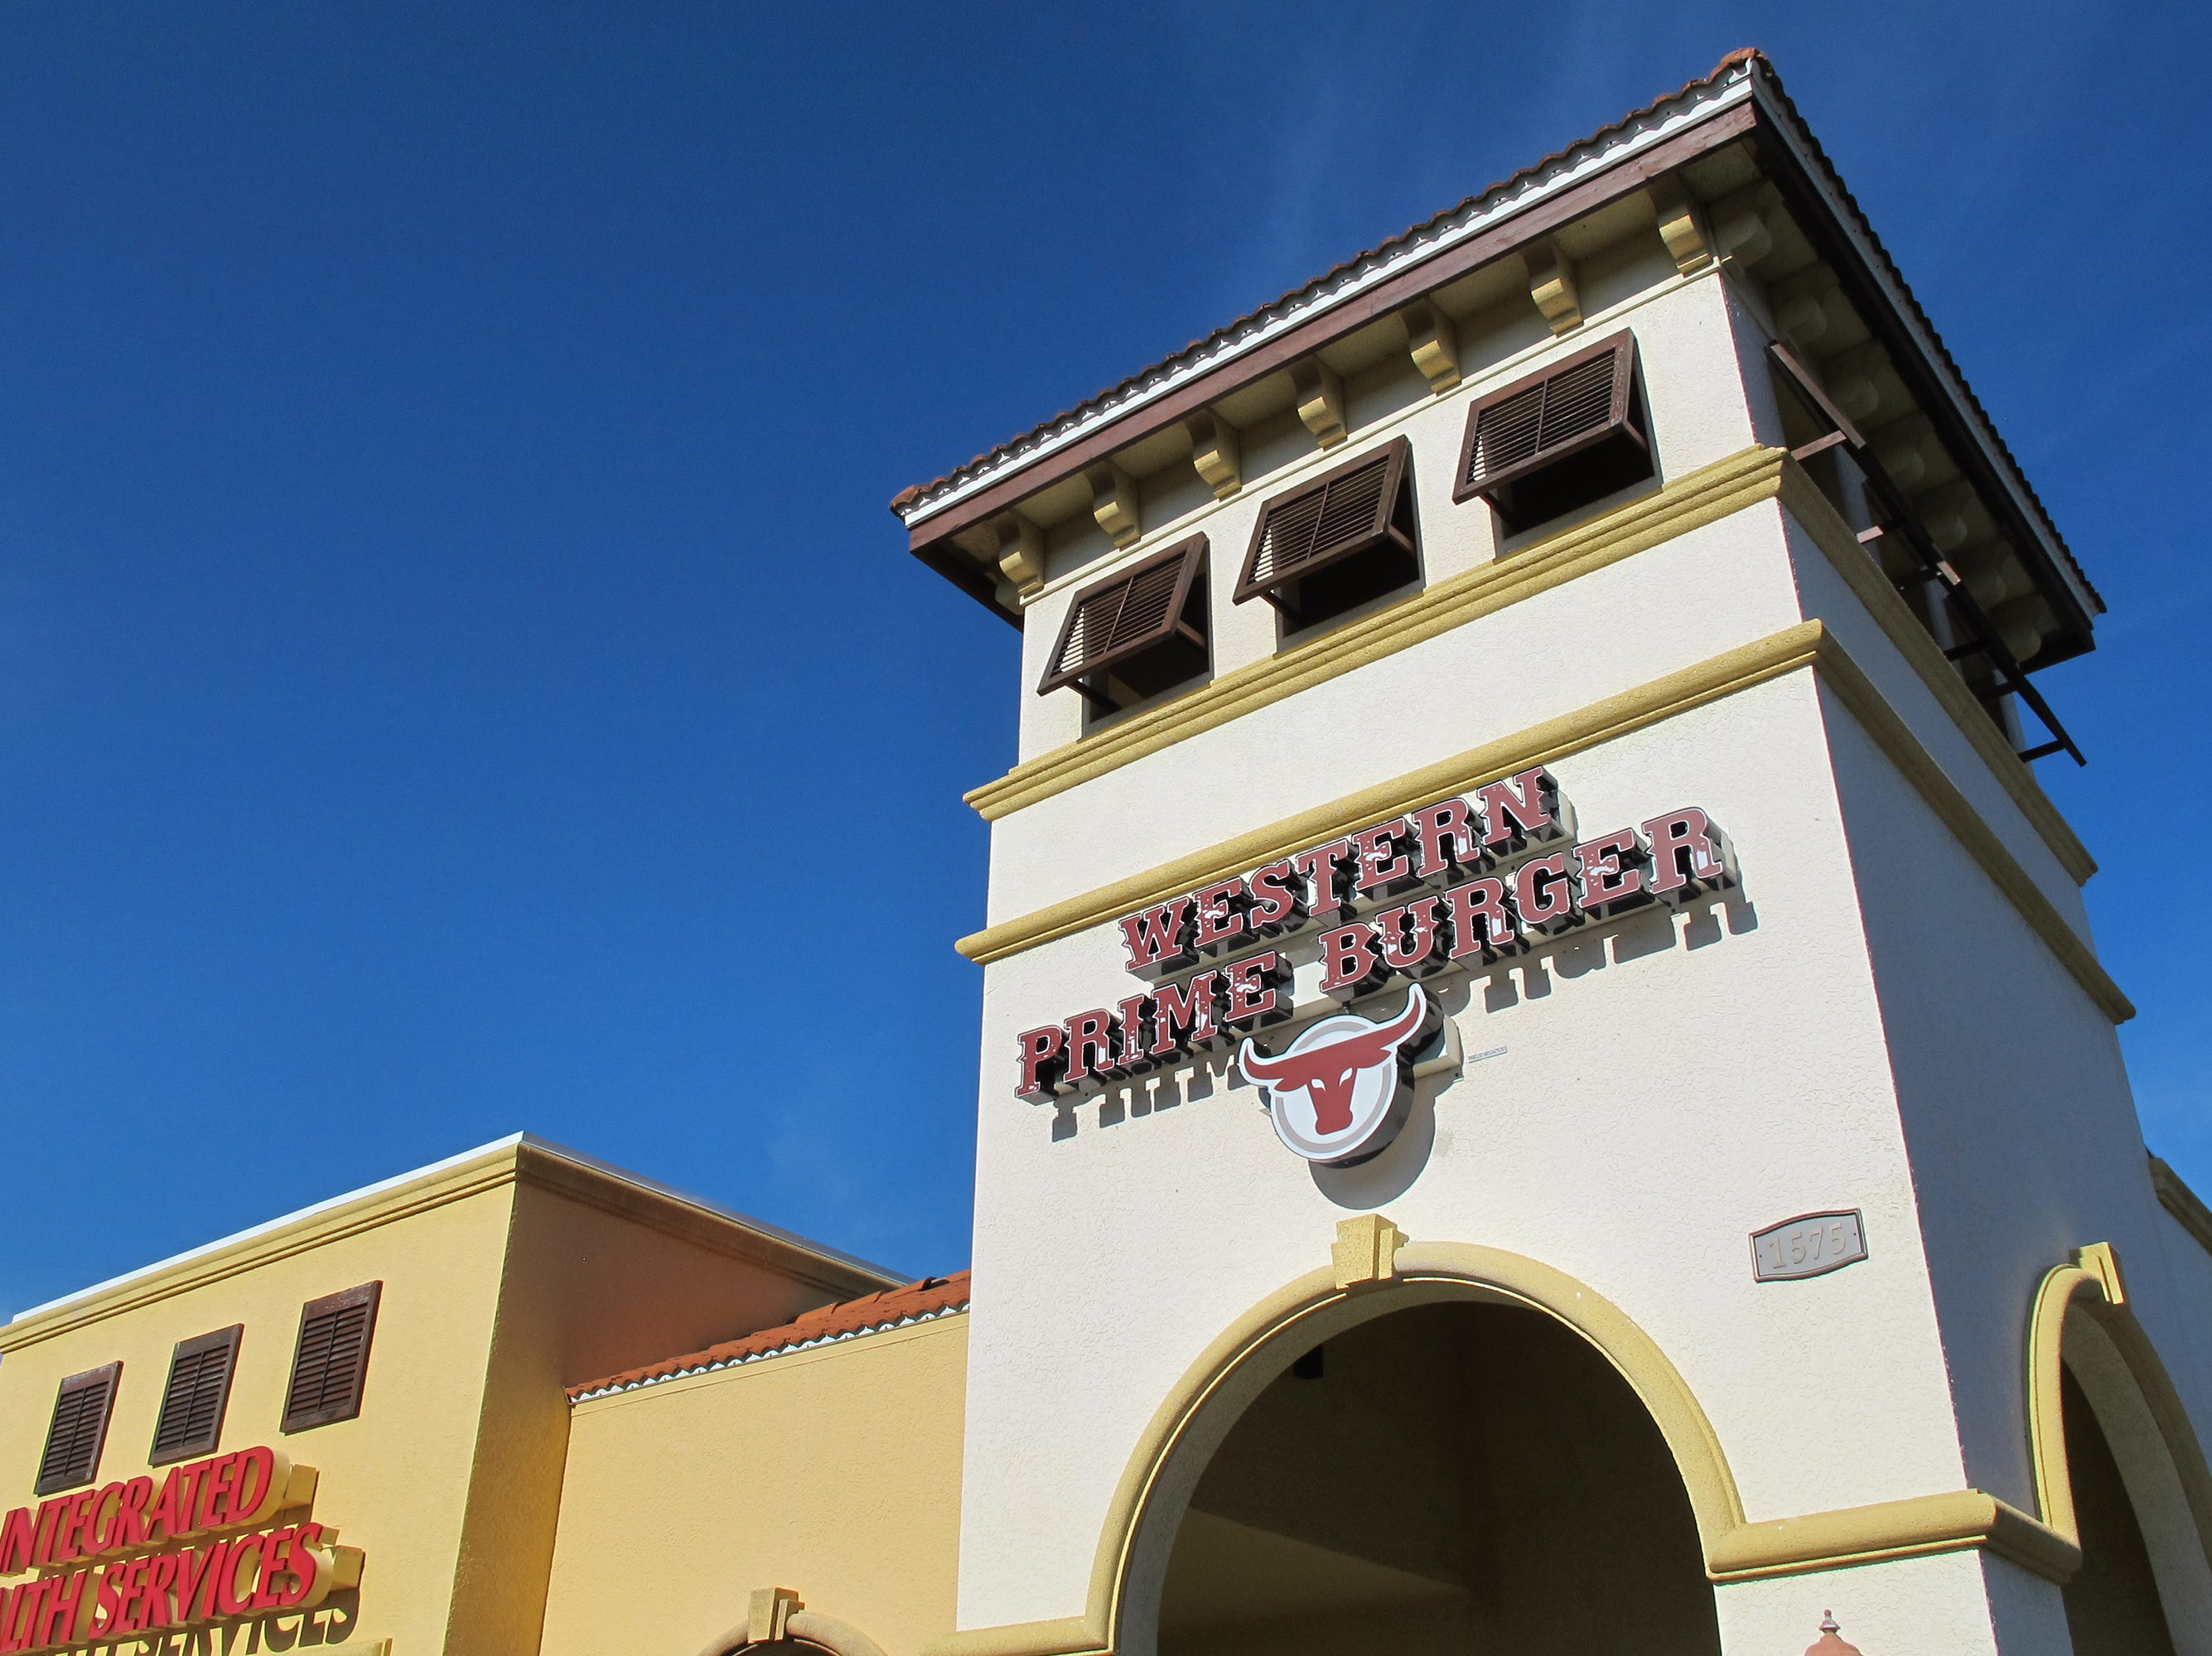 Western Prime Burger launched in August 2018 in Mission Square, the North Naples retail center anchored by Noodles Italian Cafe & Sushi Bar on Pine Ridge Road.